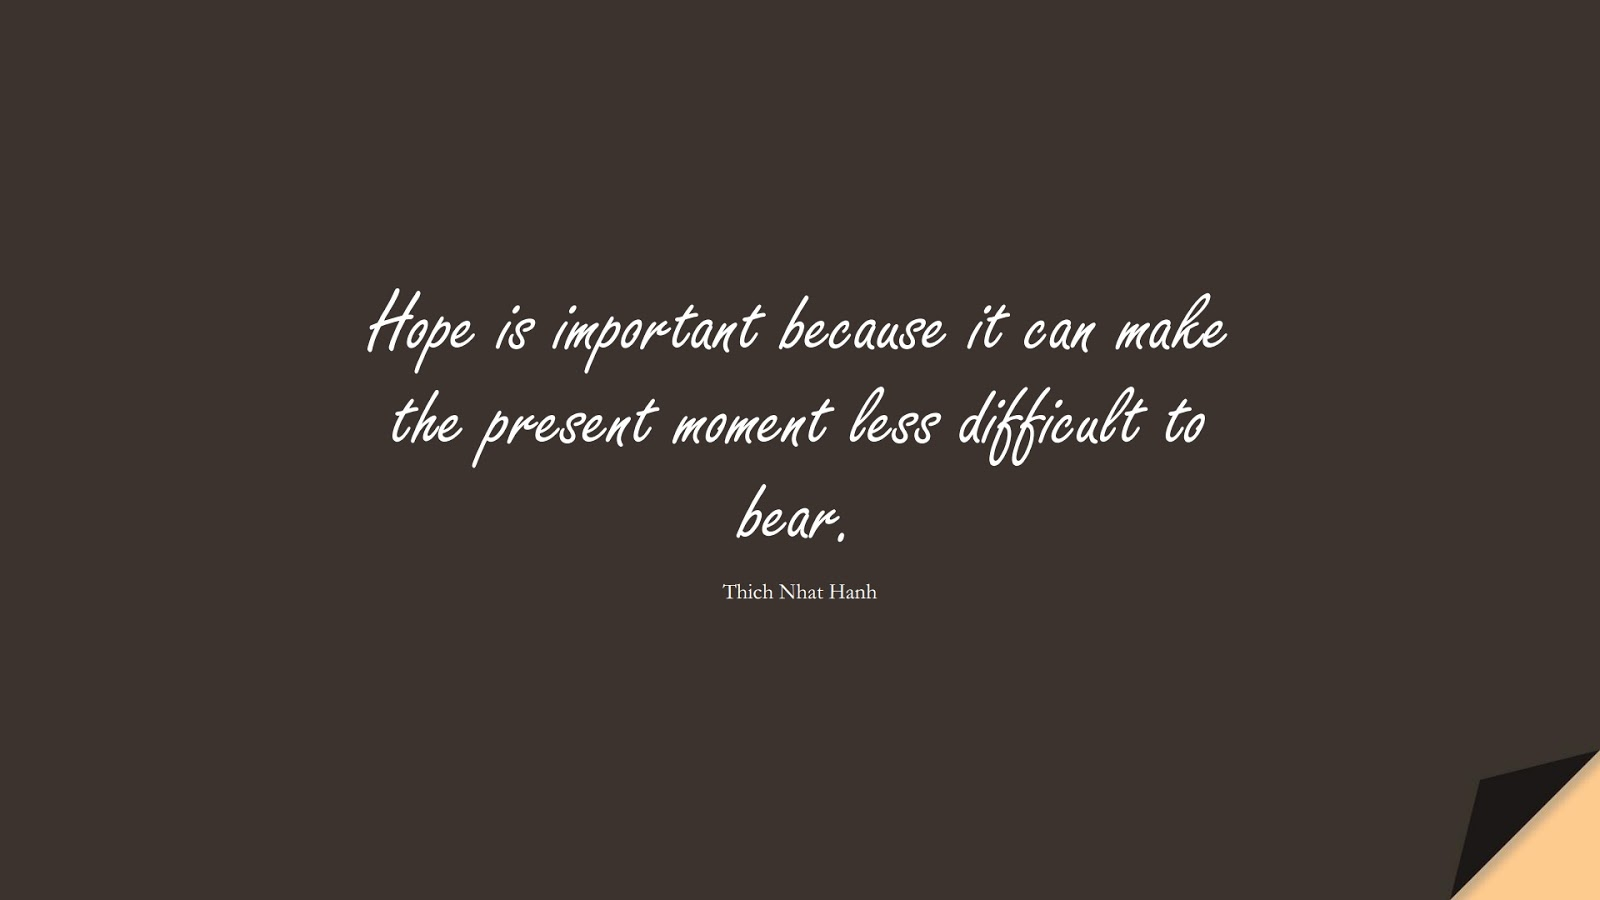 Hope is important because it can make the present moment less difficult to bear. (Thich Nhat Hanh);  #FearQuotes